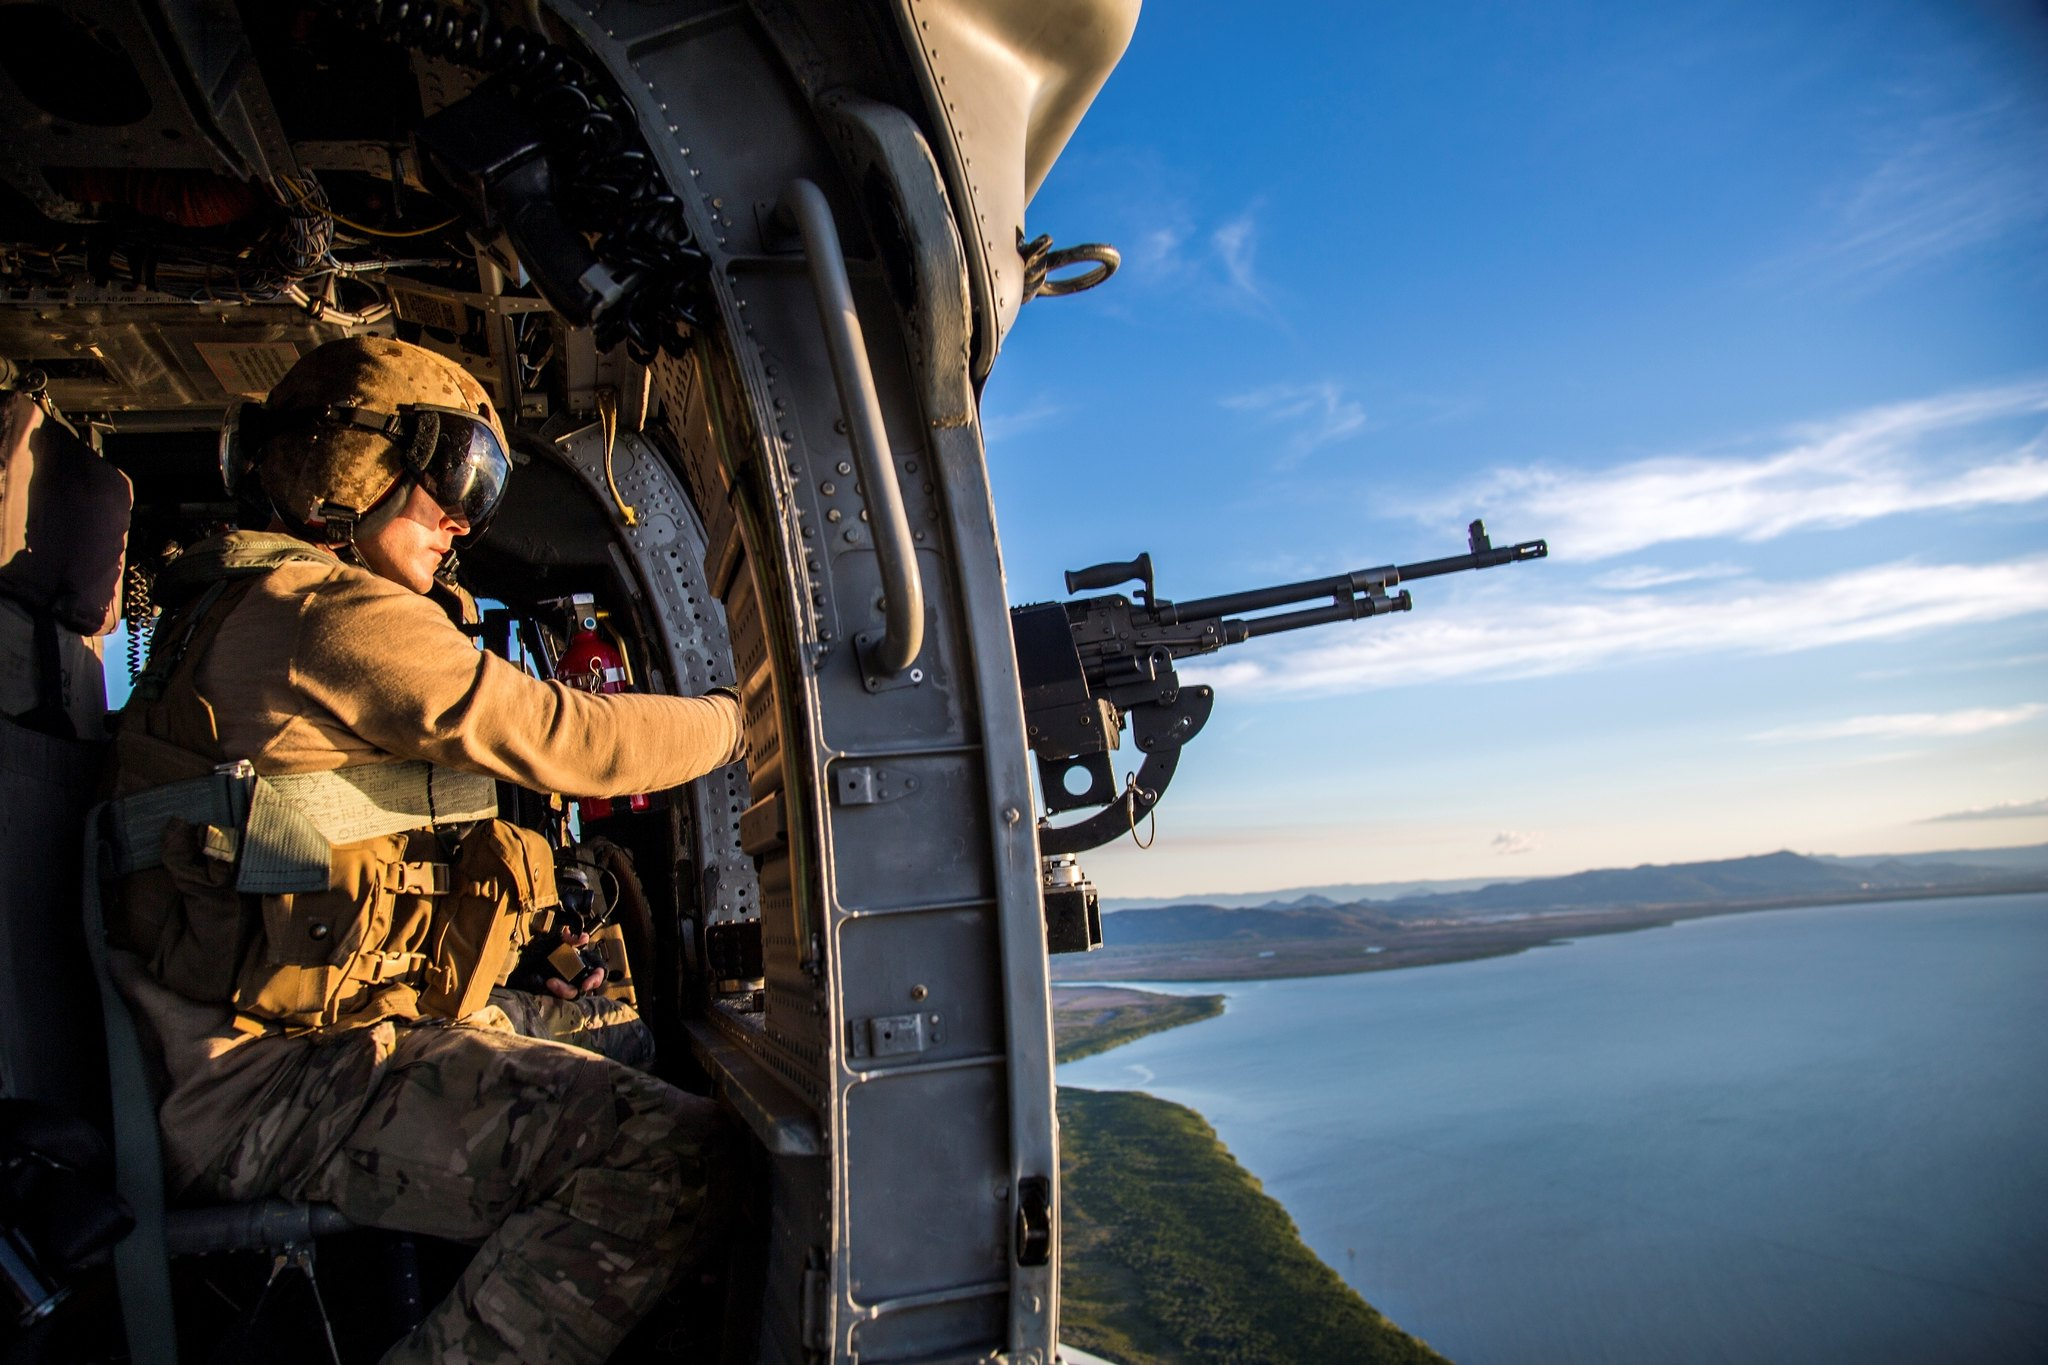 A crew chief scans the skies while on a mission to emplace U.S. and Australian special operations forces during Talisman Sabre, July 12, 2019, in Queensland, Australia. (Lance Cpl. Nicole Rogge/Marine Corps)